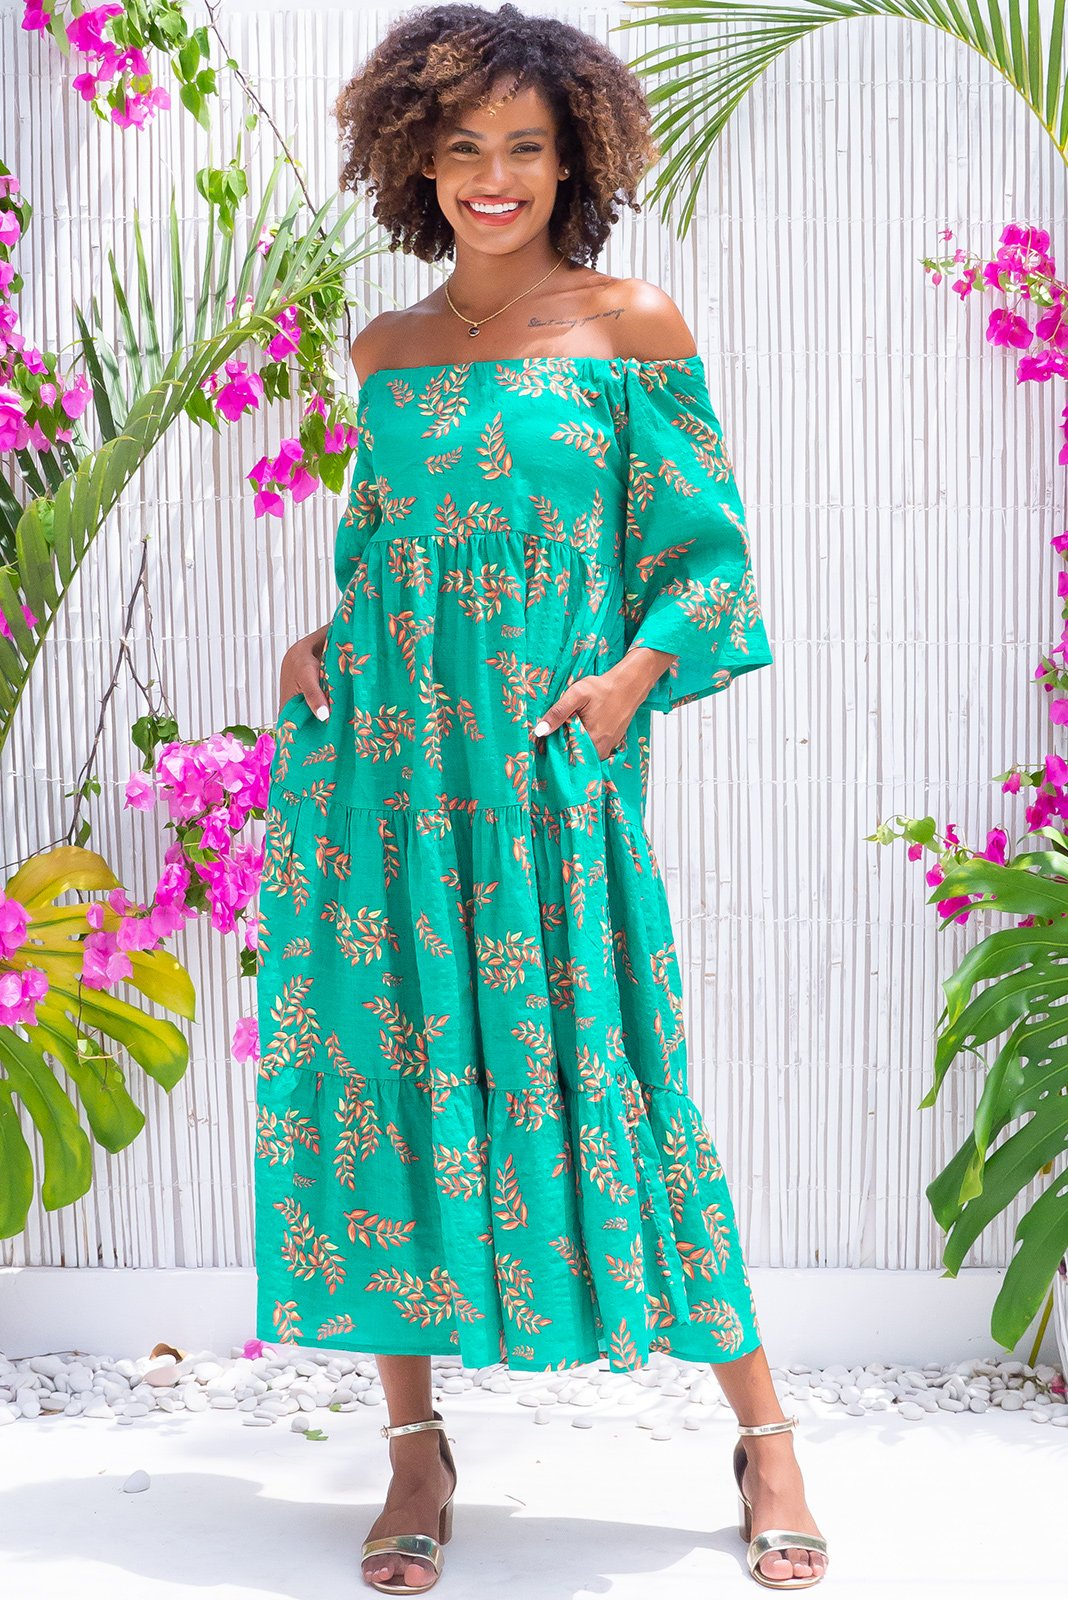 The Lulu Liberty Green Shadow Leaf Maxi Swing Dress can an be worn 2 ways, off the shoulder style or on top of shoulders in scooped neck style featuring keyhole style back detail with drawstring tie to adjust neckline, side pockets, fabric belt included to cinch in waist, rich emerald green base with amber and yellow leaf print in woven 100% cotton.